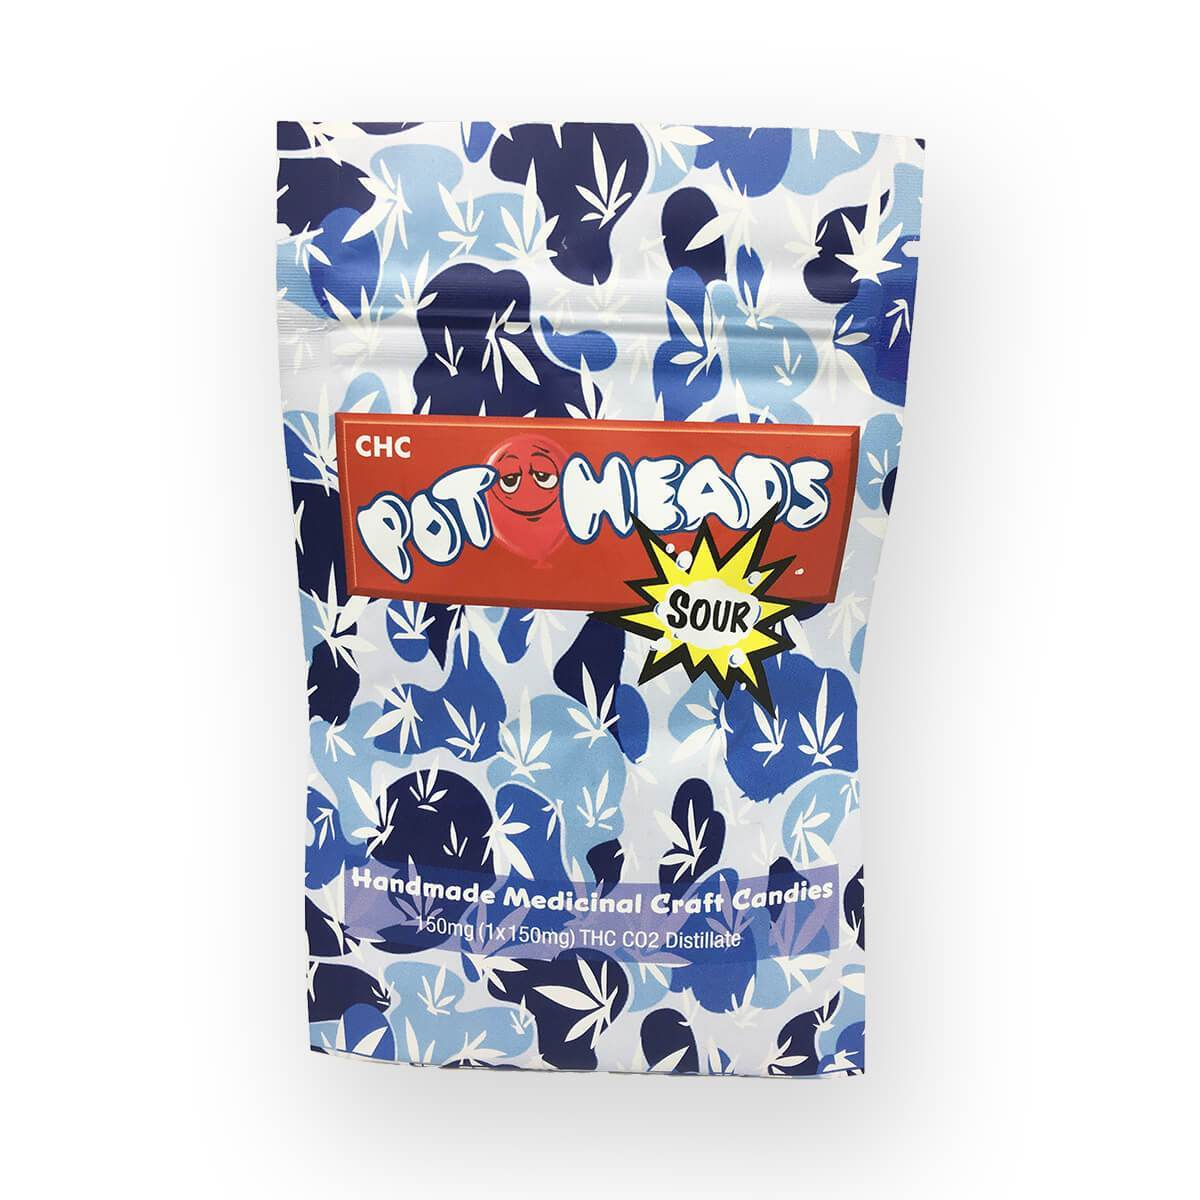 Pot Heads 150mg THC